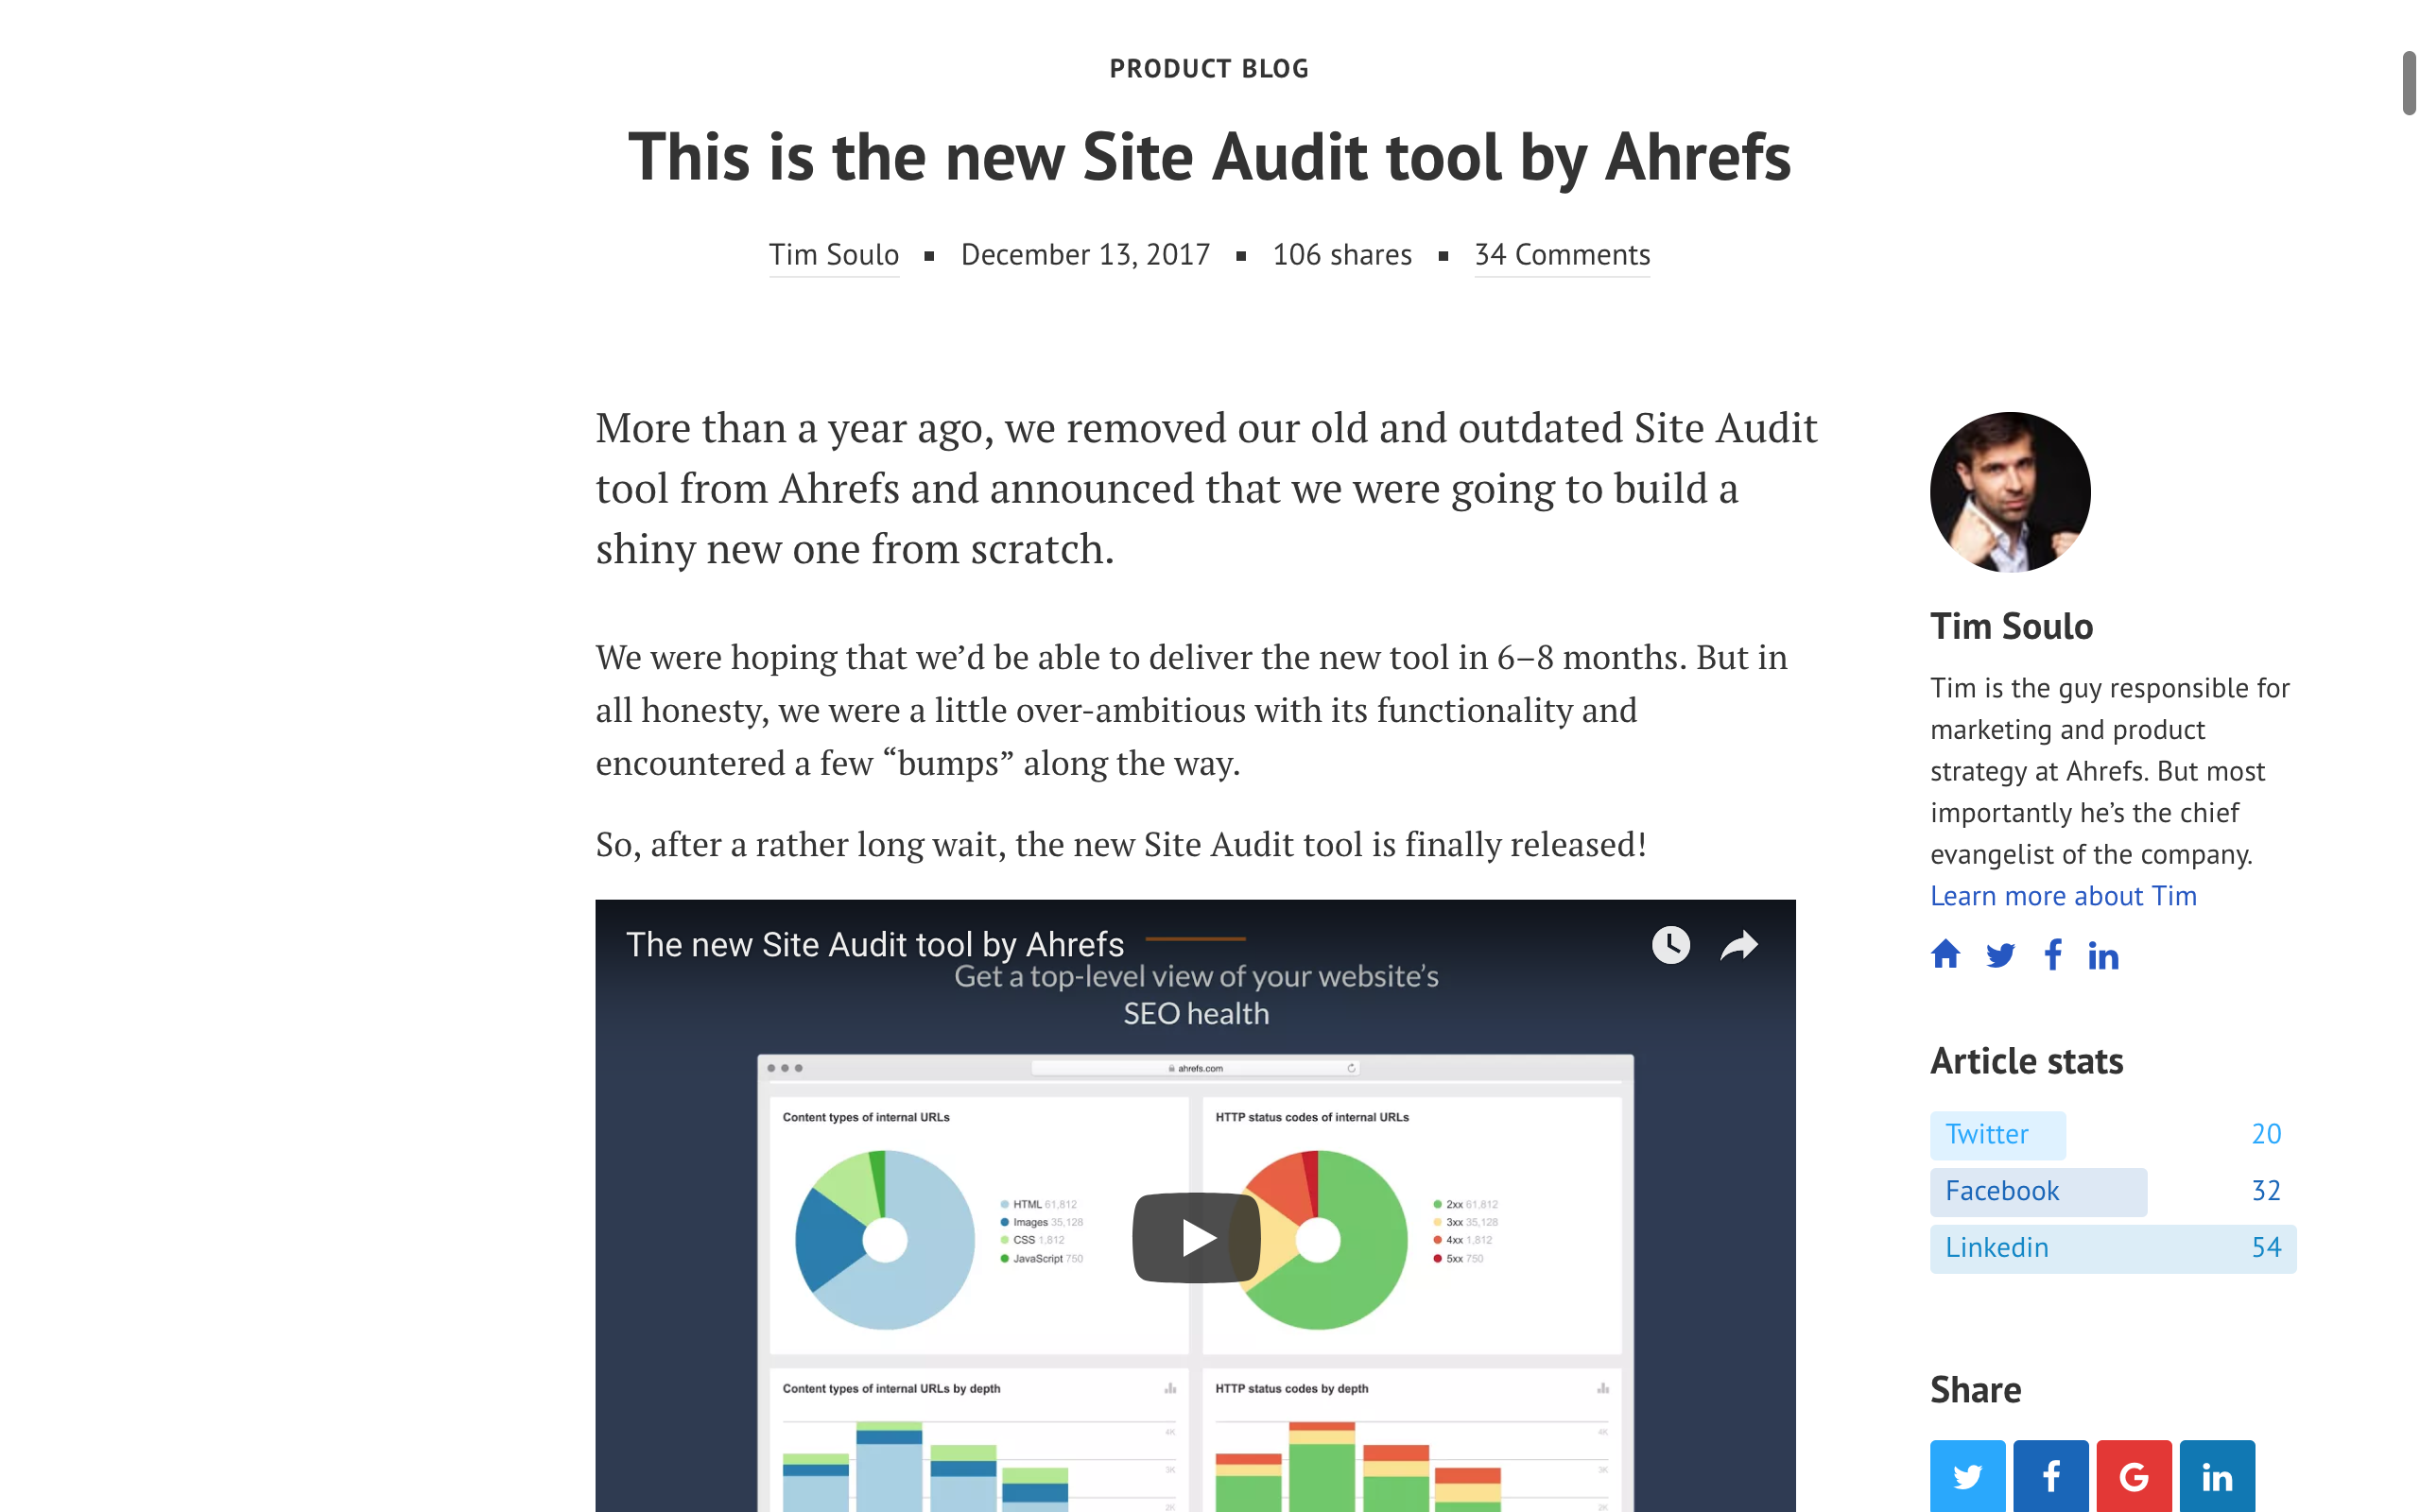 Ahref's New Feature Blog Post